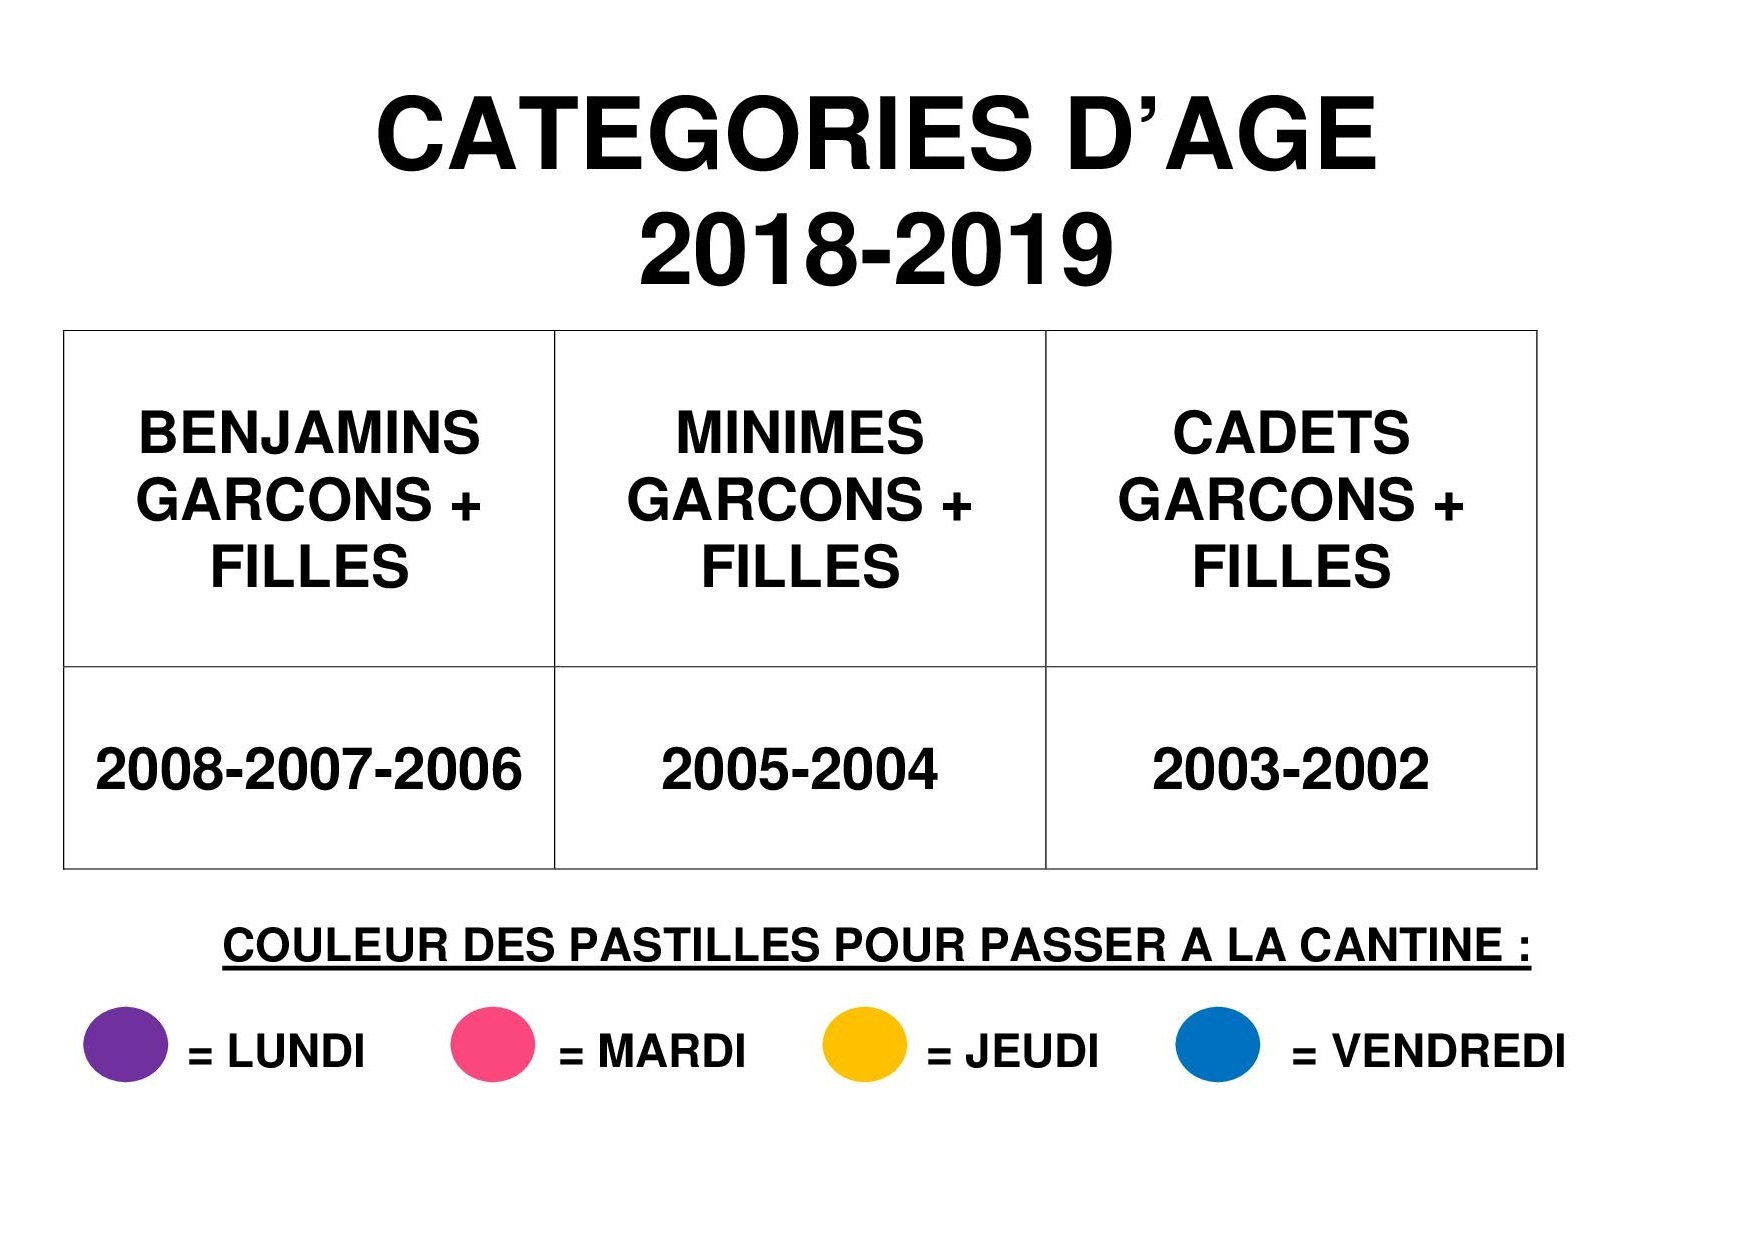 CATEGORIES AGE